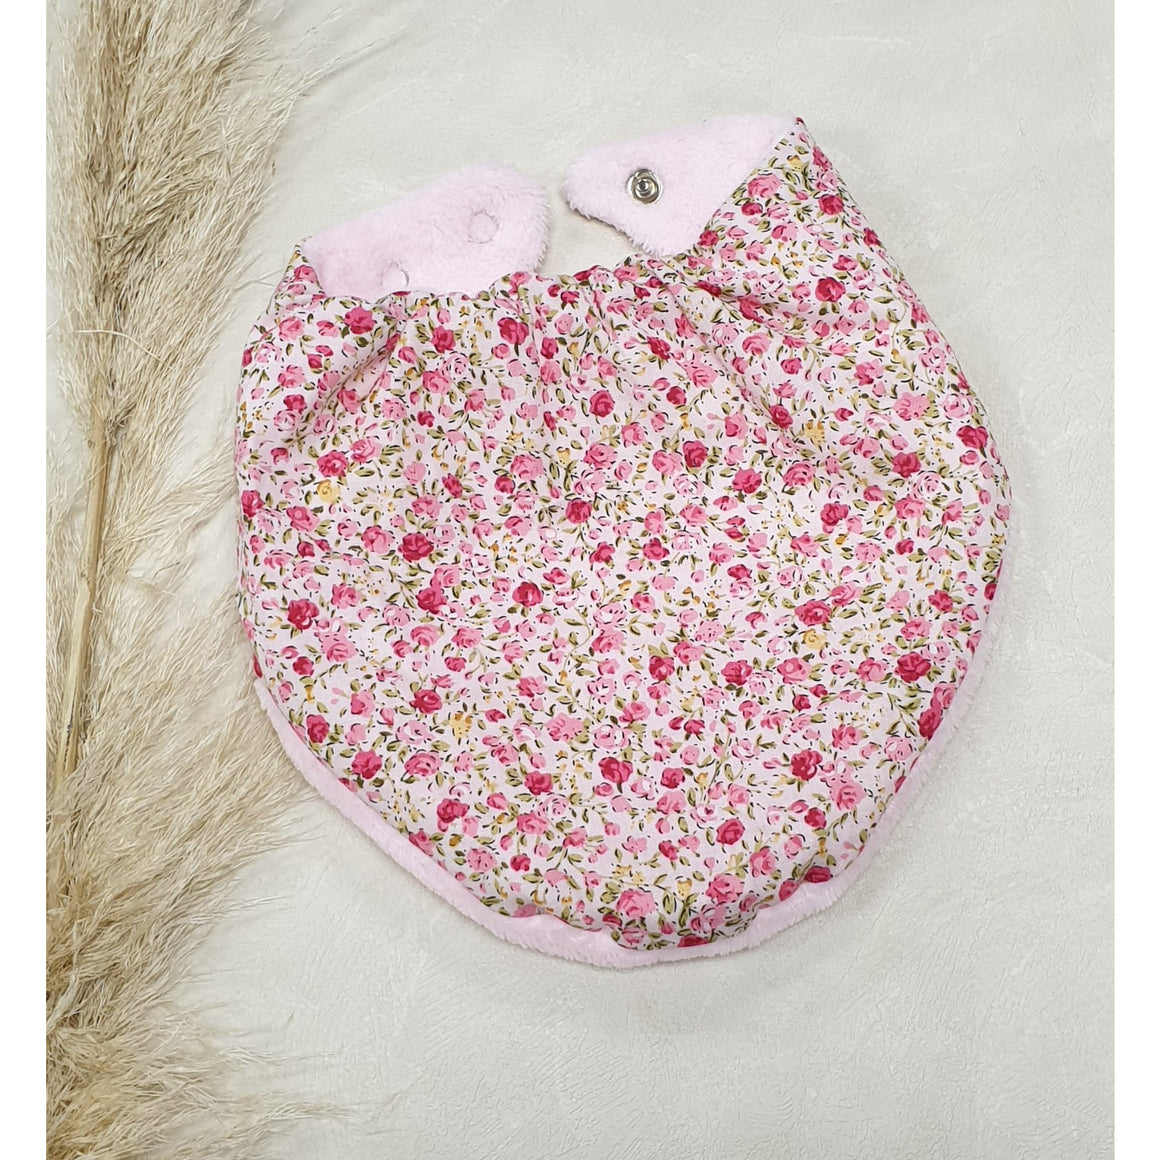 Baby Dribble Bibs - Pale Pink w/ small Pink Flowers